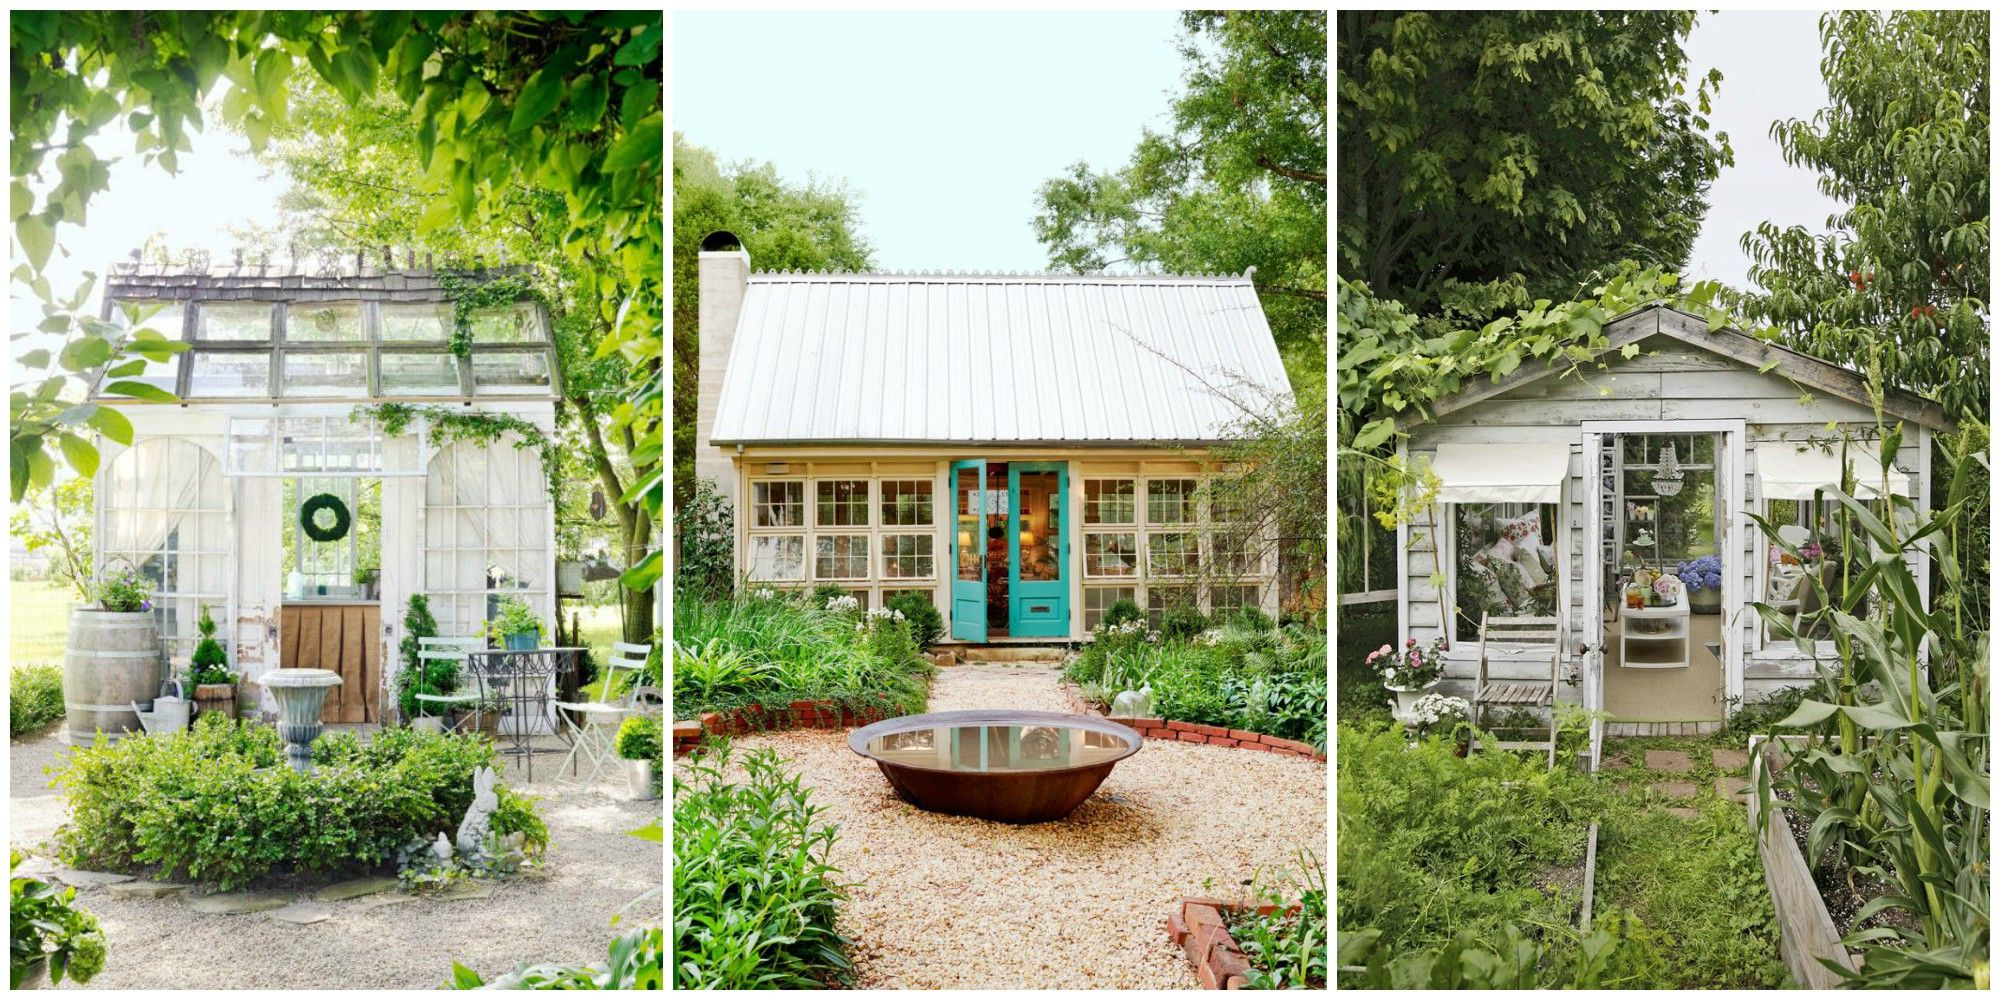 Check Out These Incredibly Whimsical, Cottage Like Potting And Crafting  Sheds That Look Like Theyu0027re Straight Out Of A Fairytale, And Start  Dreaming About ...